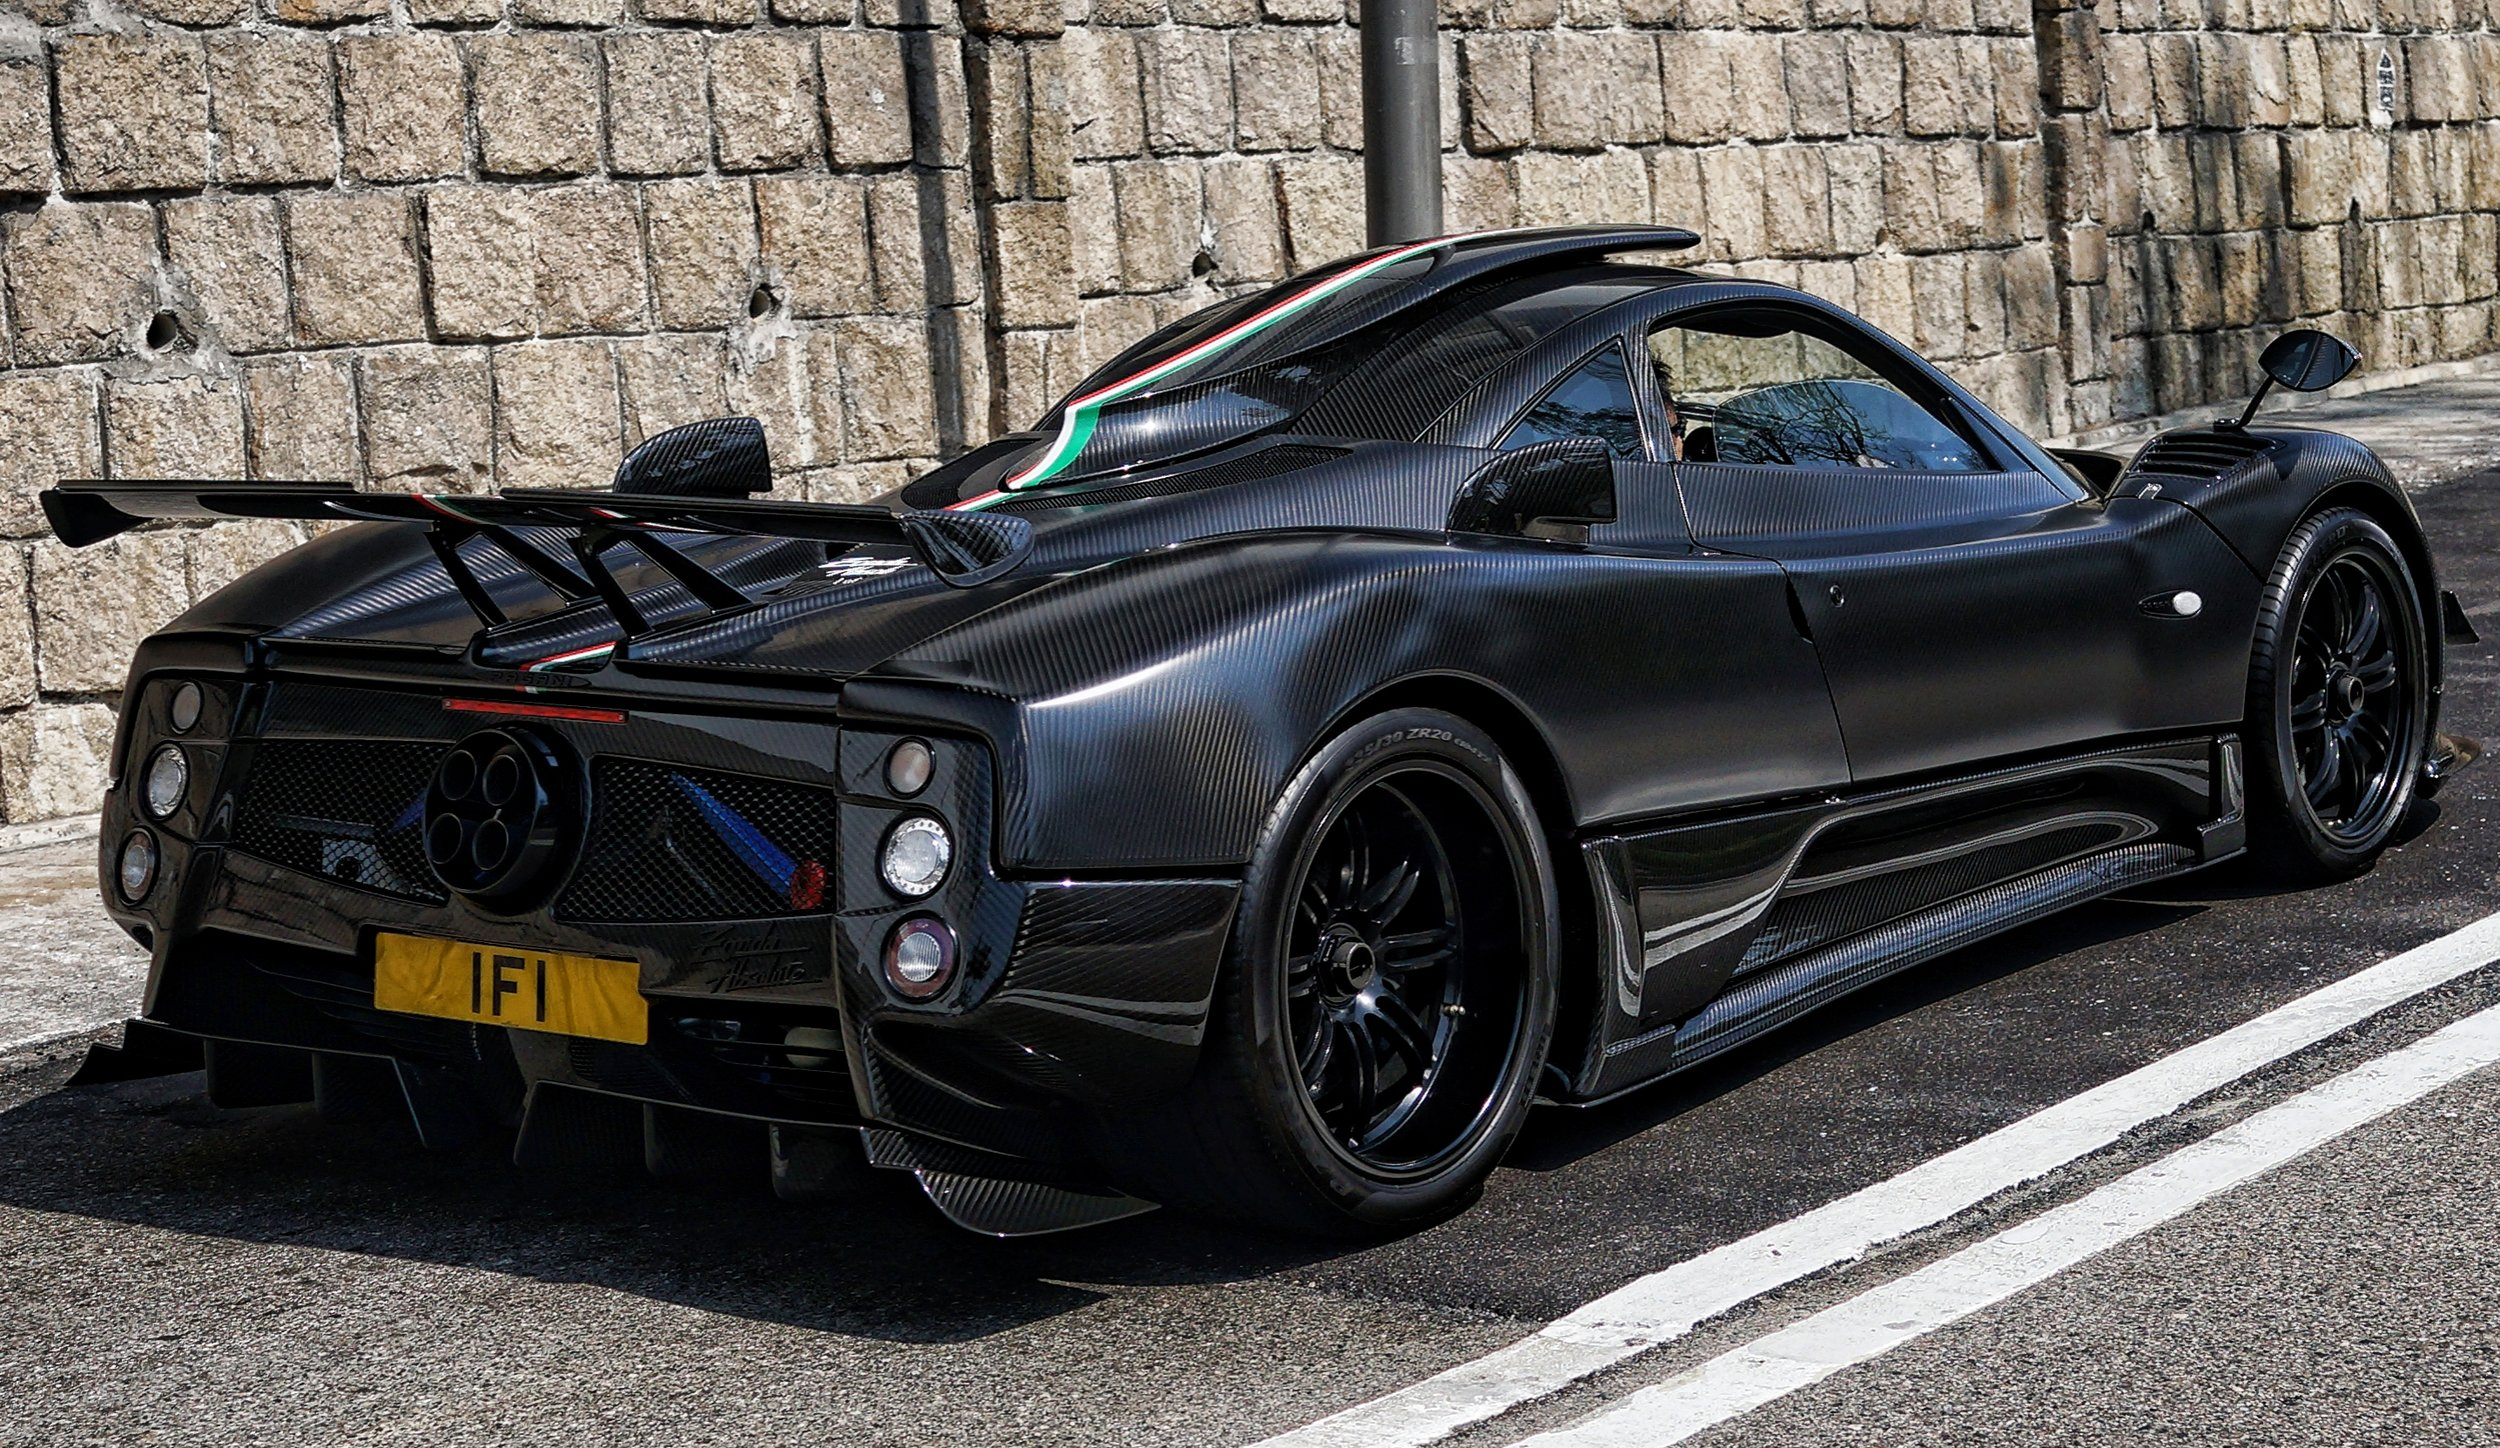 Oh my golly gosh, the simply amazing Pagani Hypercar, hand made in Italy